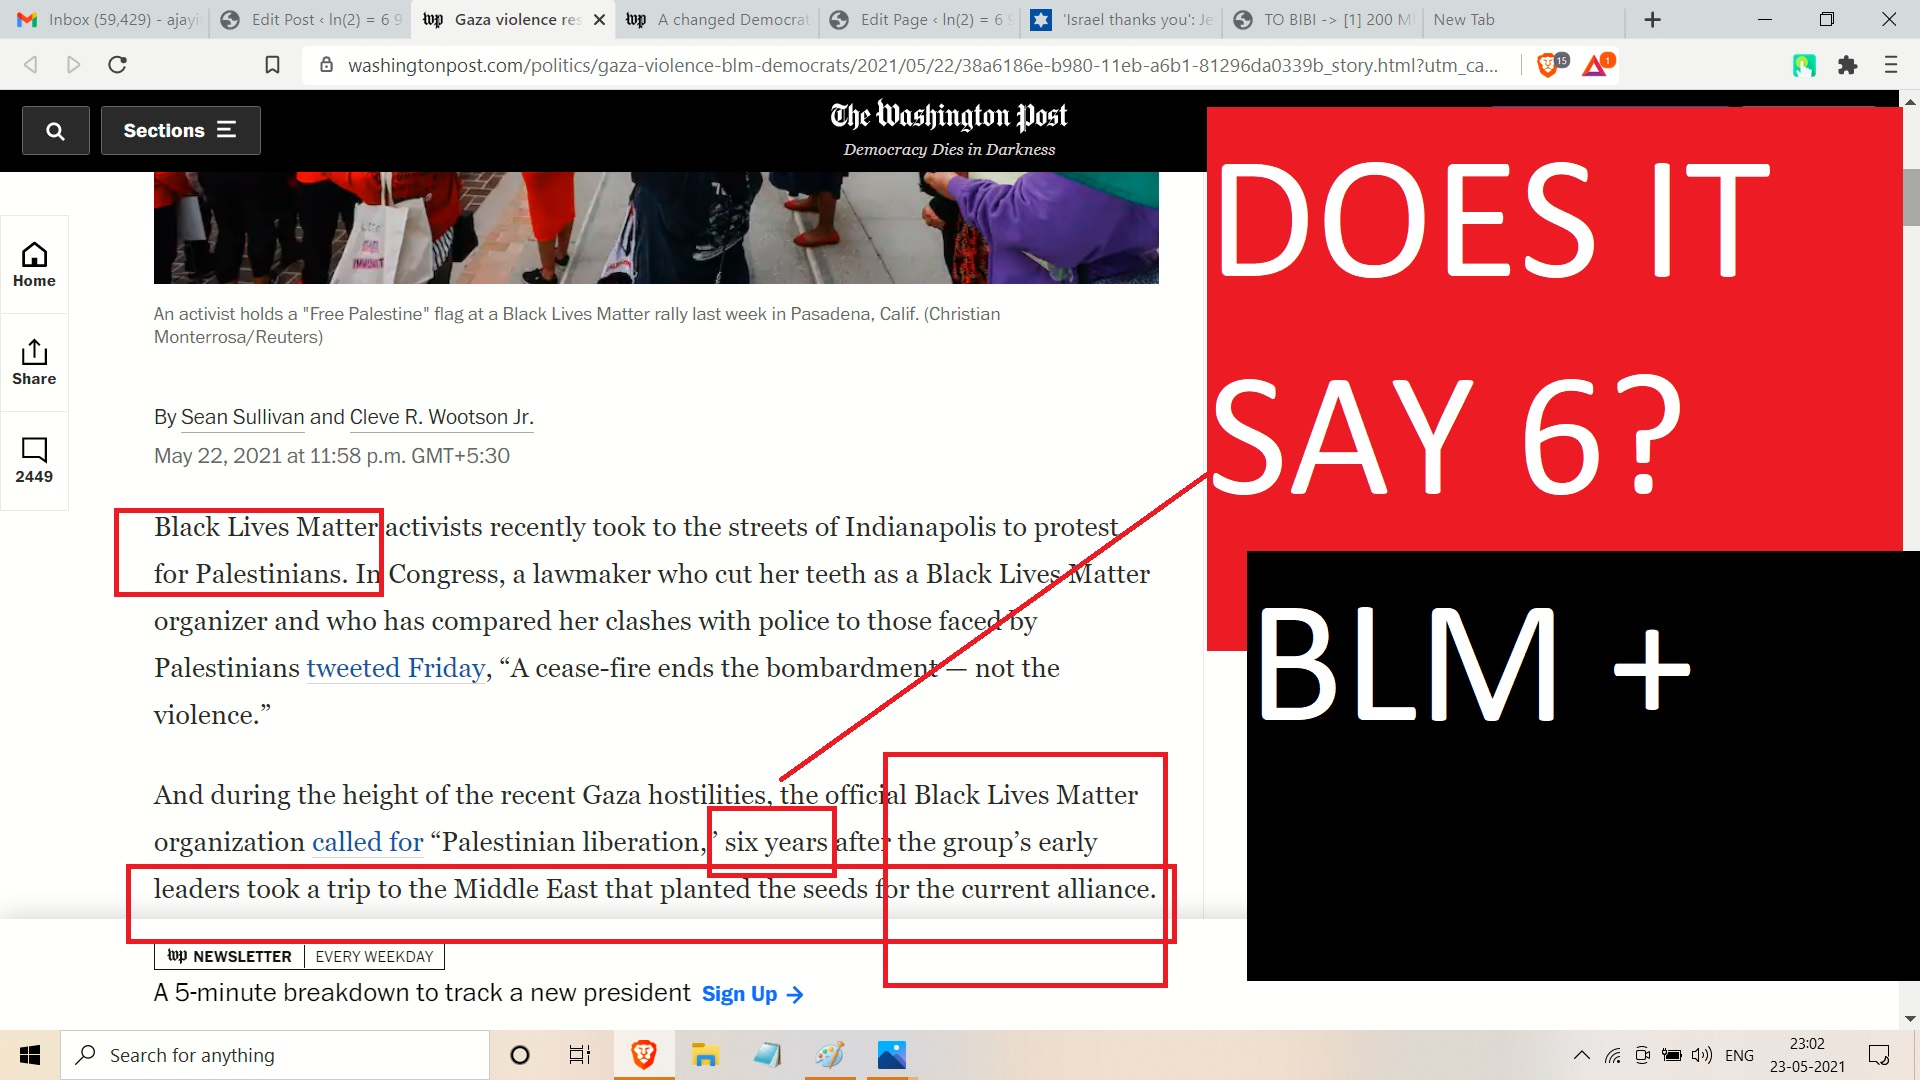 FROM AJAY MISHRA SO HERE IS BLACK LIVES MATETR AND 6 AND P FOR PALESTINE NOT ISRAEL